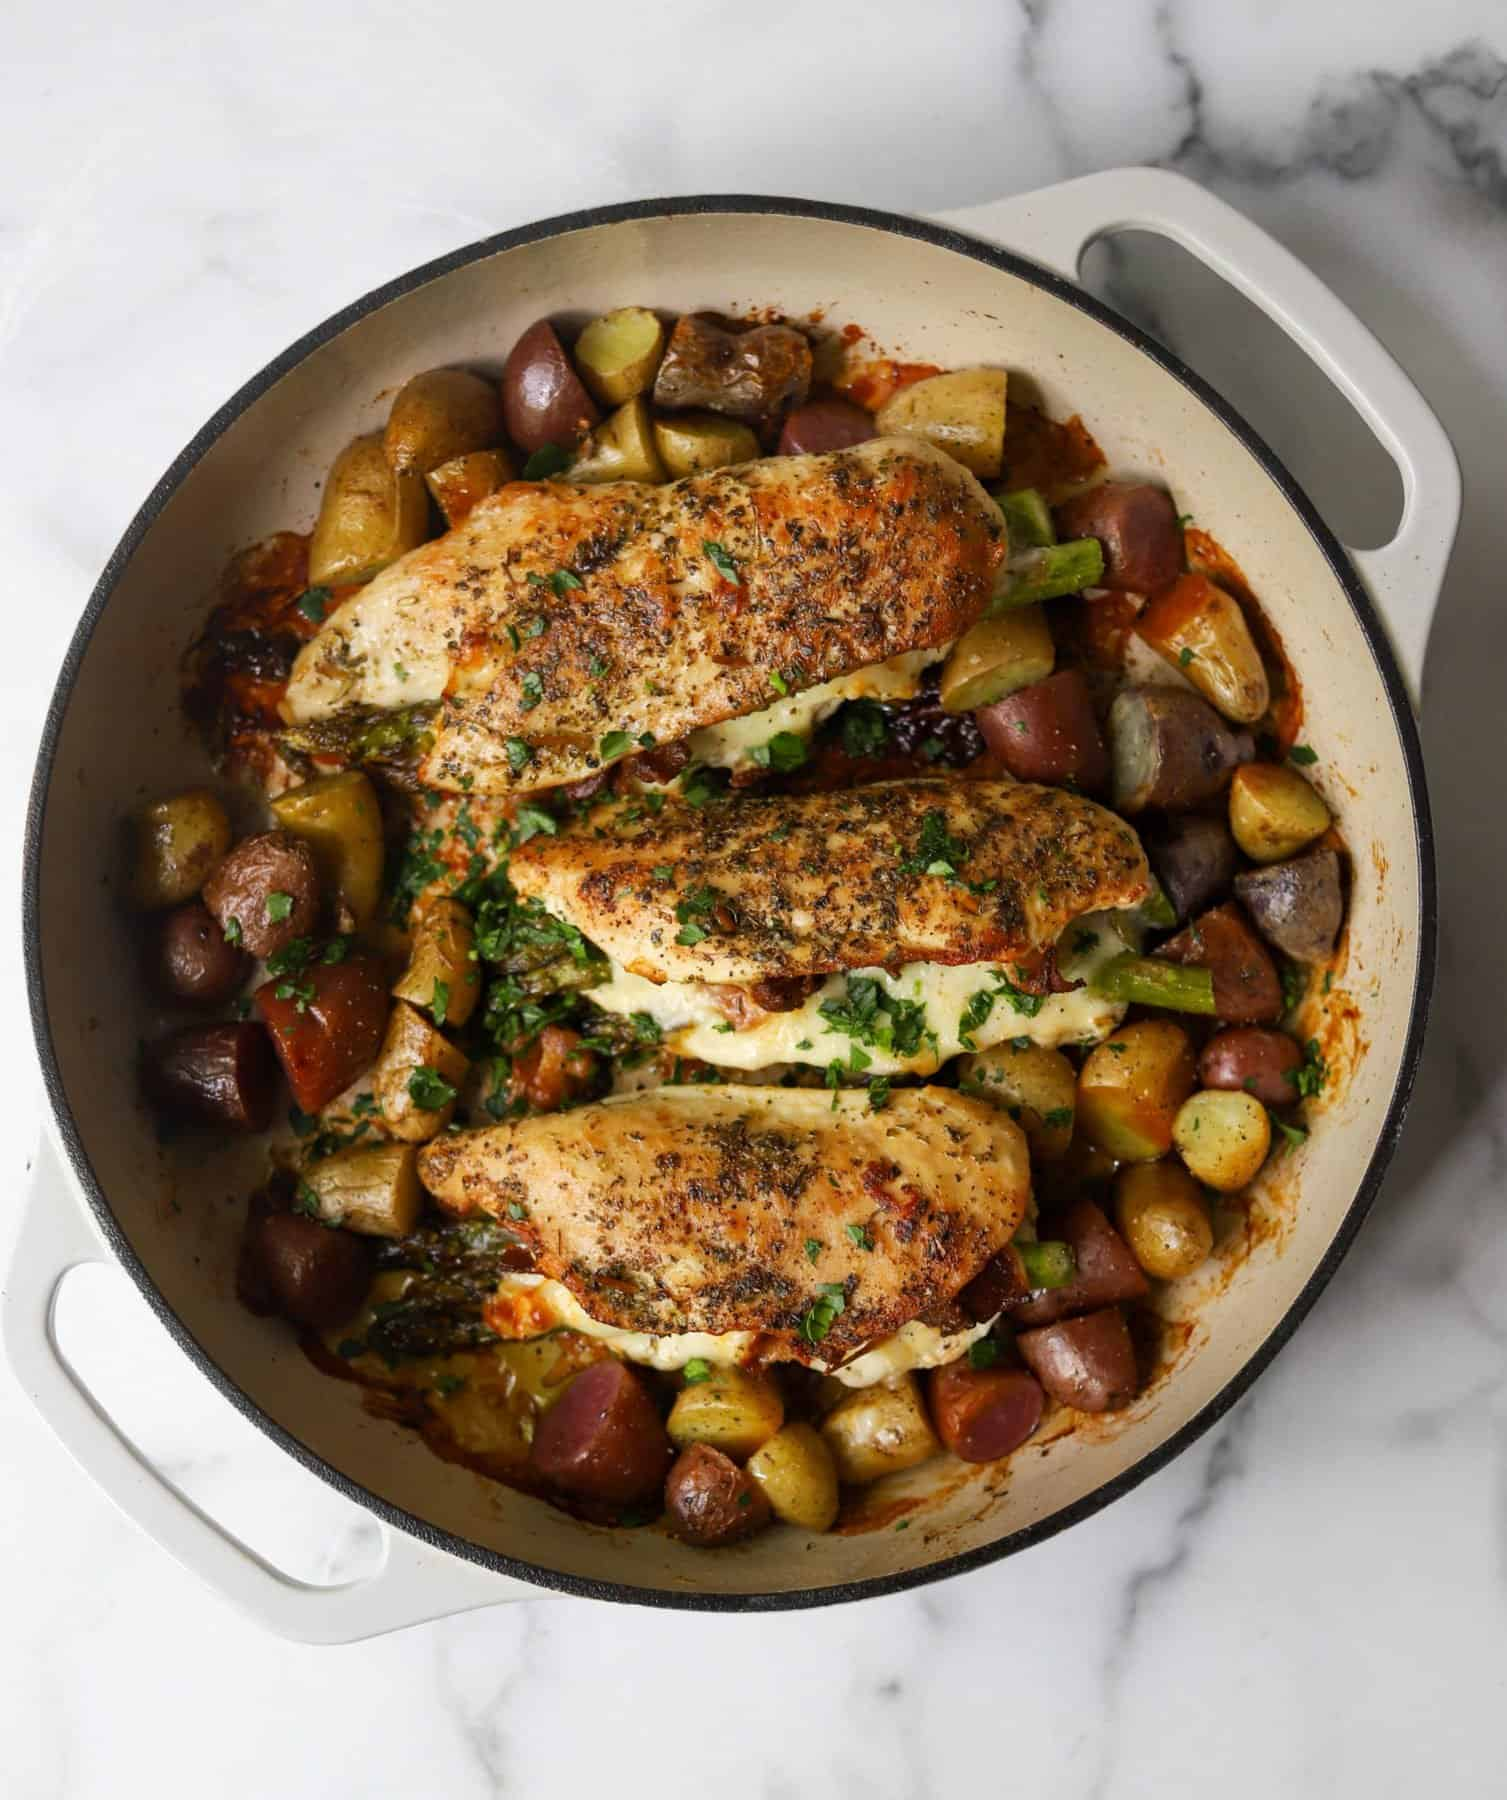 Asparagus stuffed chicken and potatoes in a white dish as a healthy one pot meal